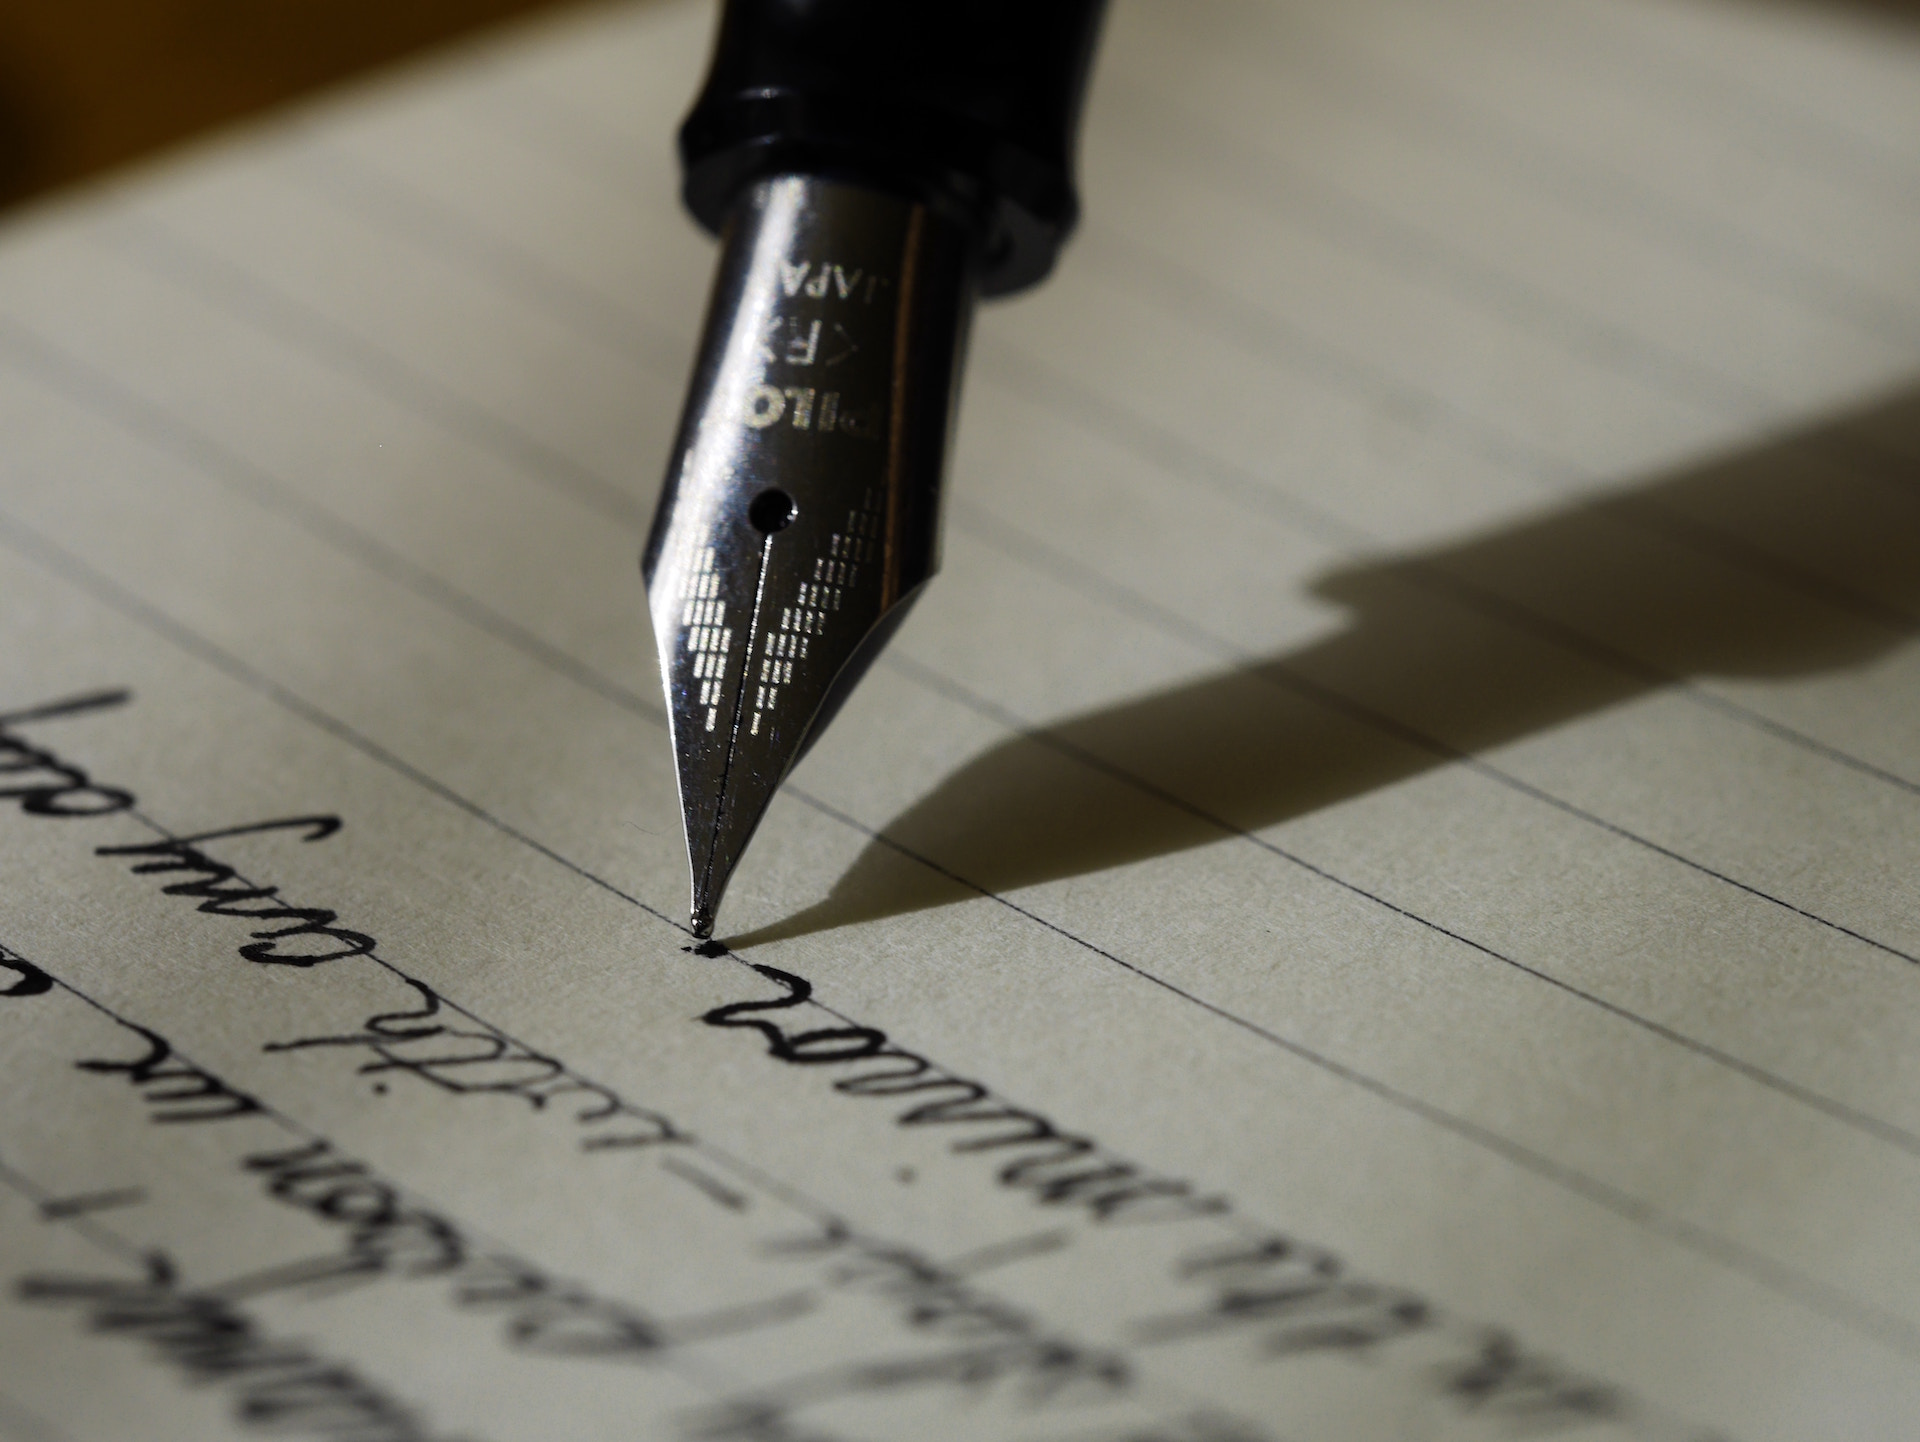 Writing notes or condolence or support